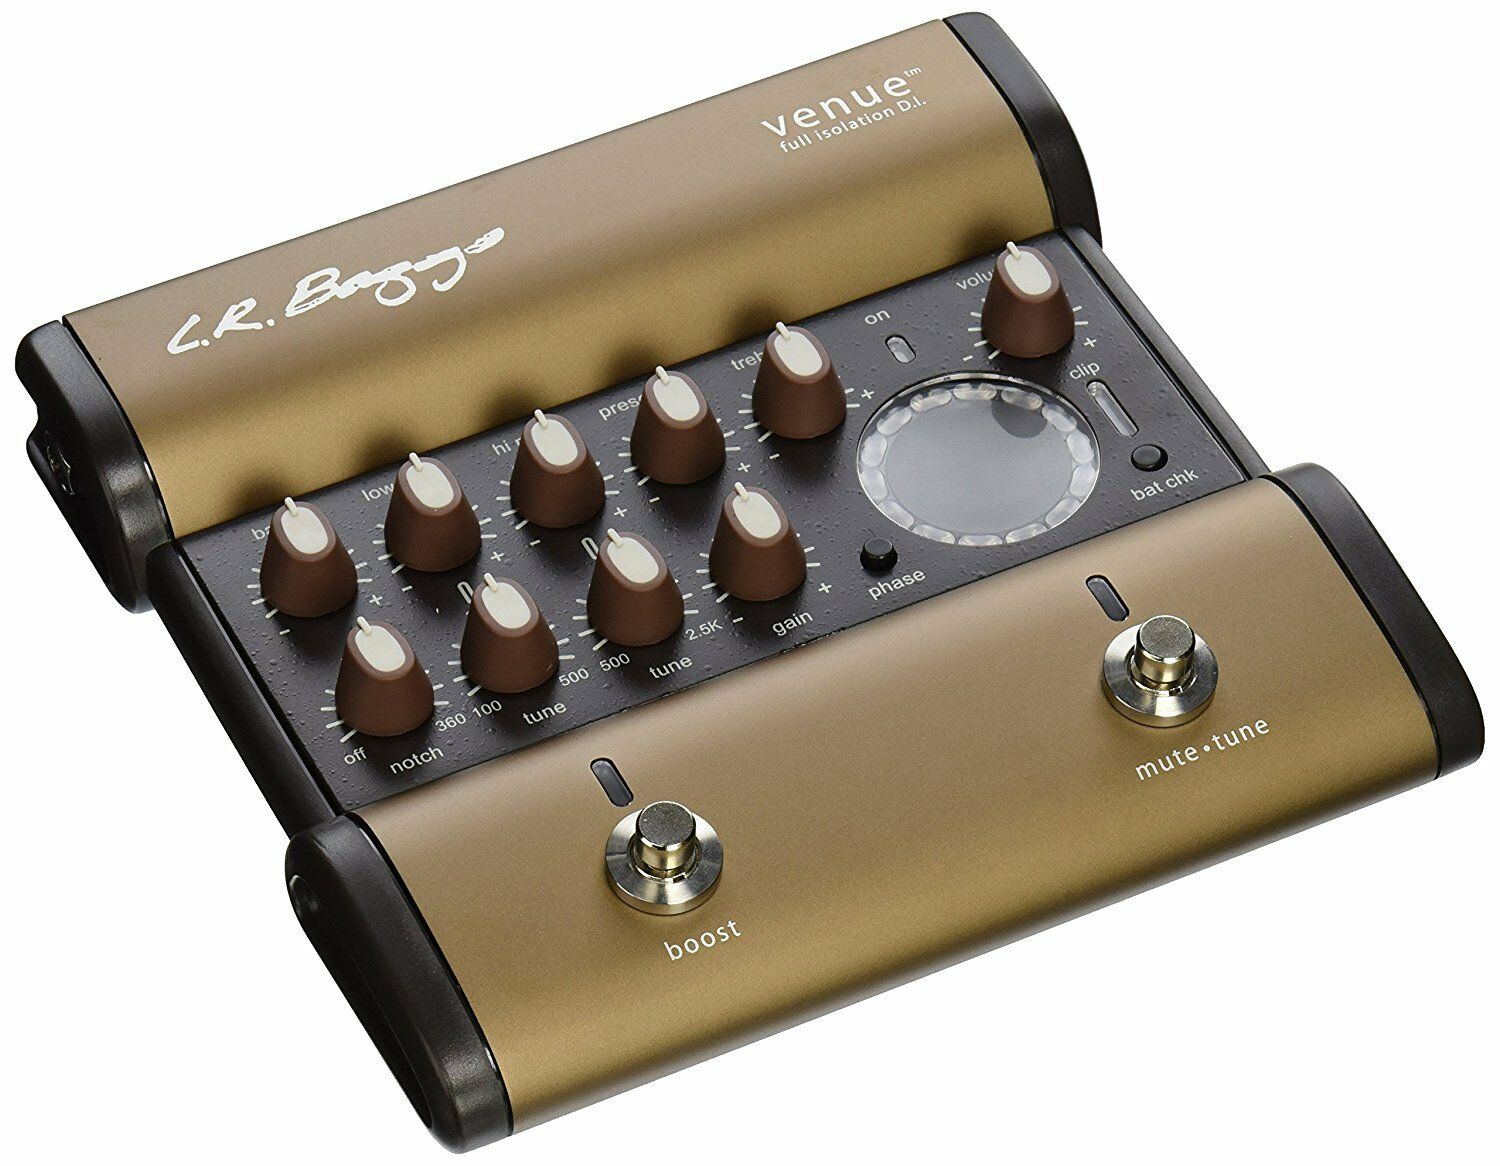 LR Baggs VENUE DI Acoustic Guitar Preamp Direct Box and Effects Pedal